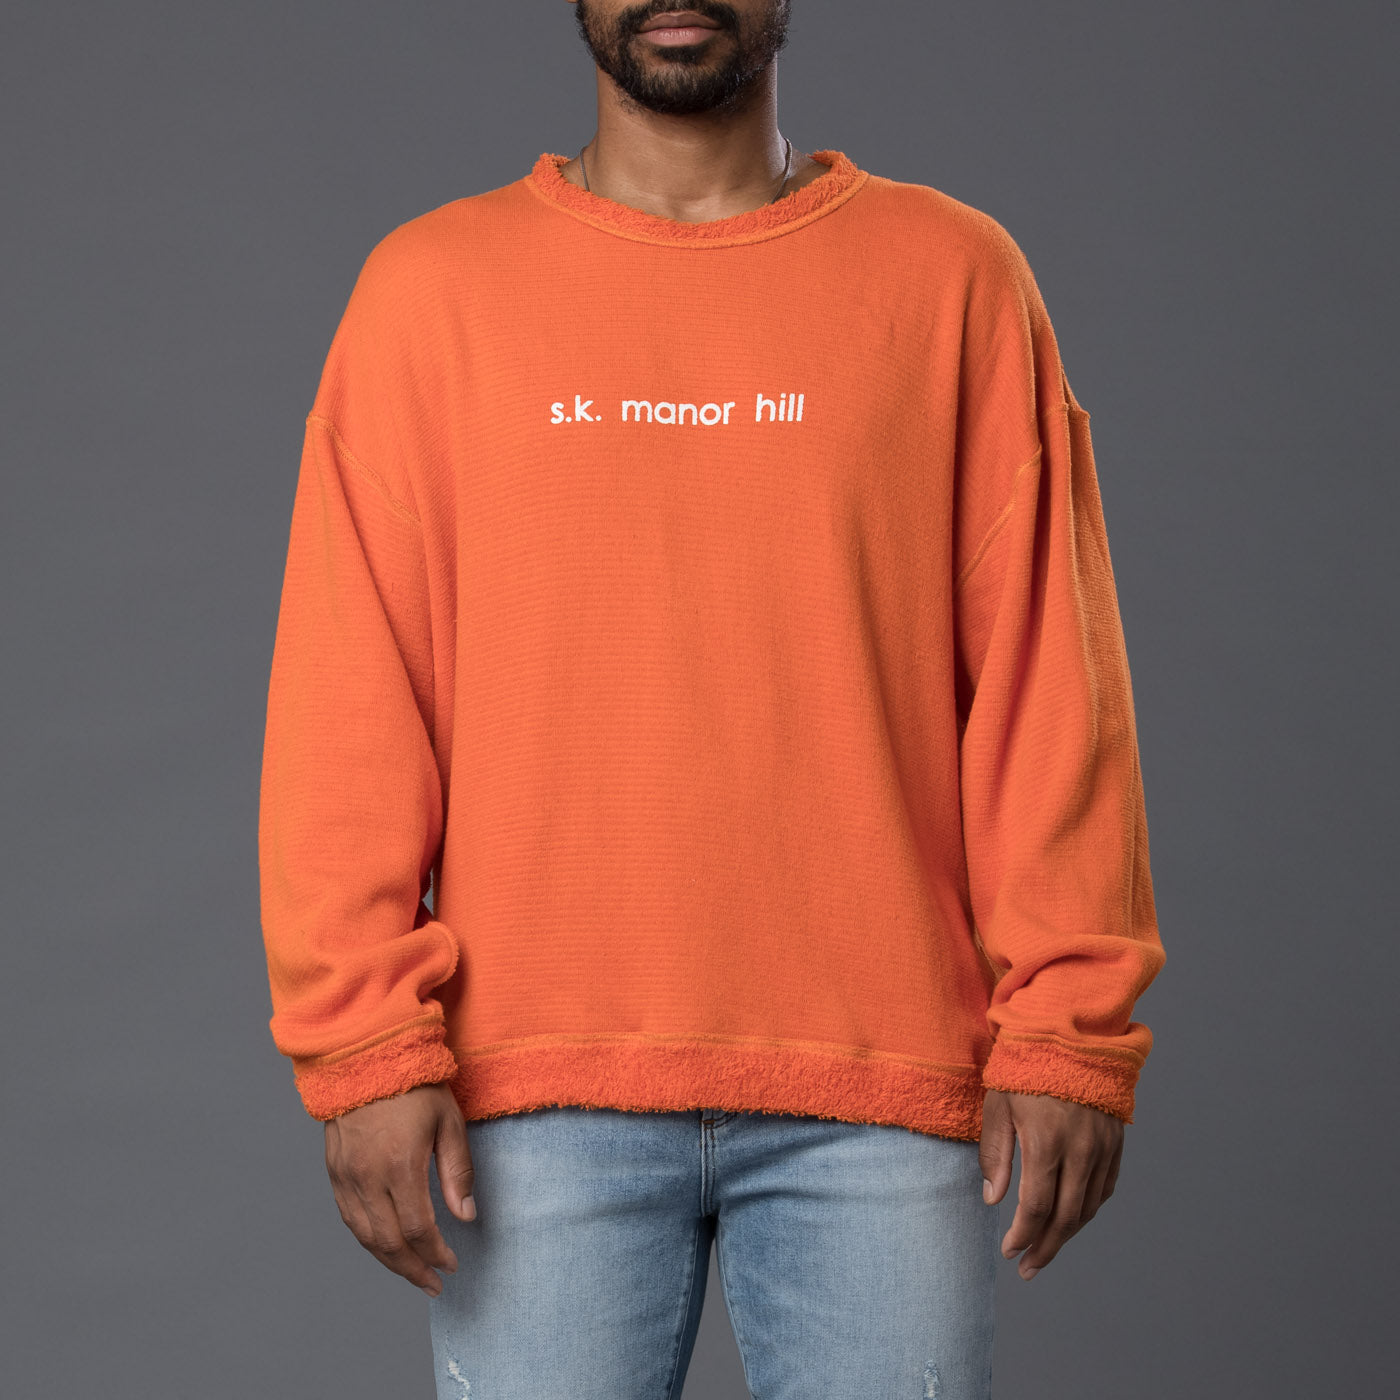 s.k. manor hill Orange Reversible Pile Sweatshirt